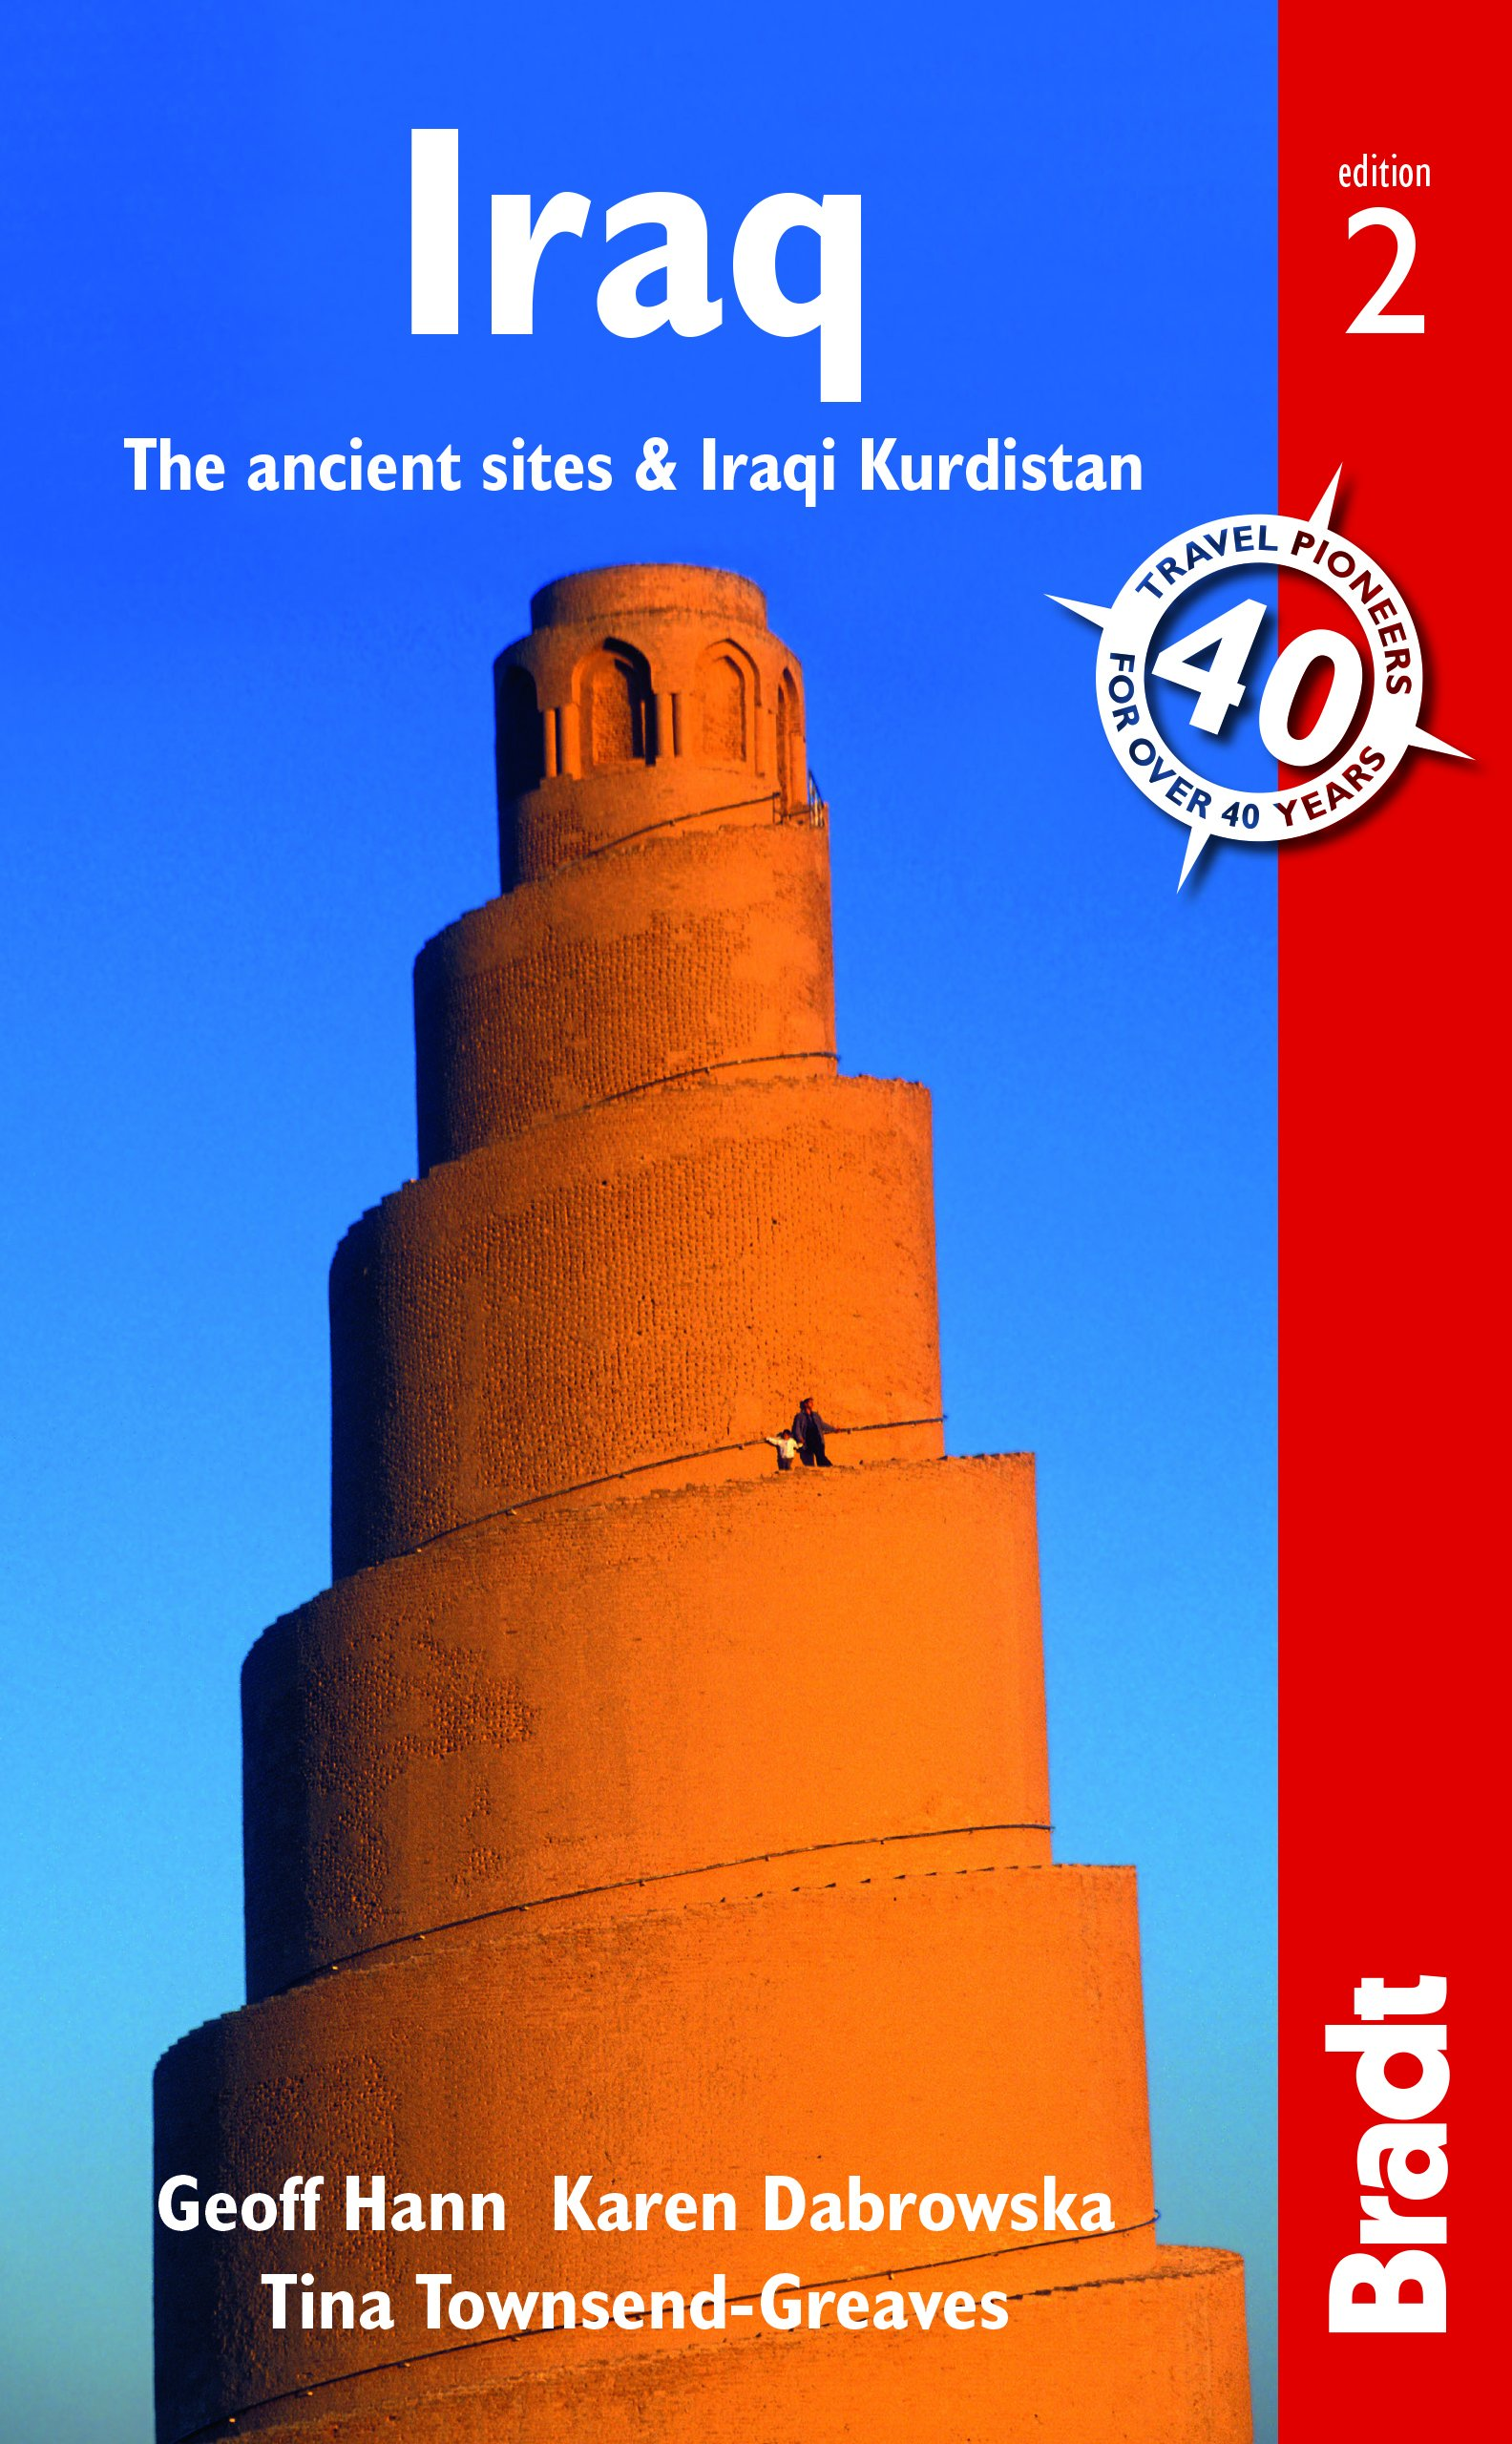 Iraq (Bradt Country Guides)